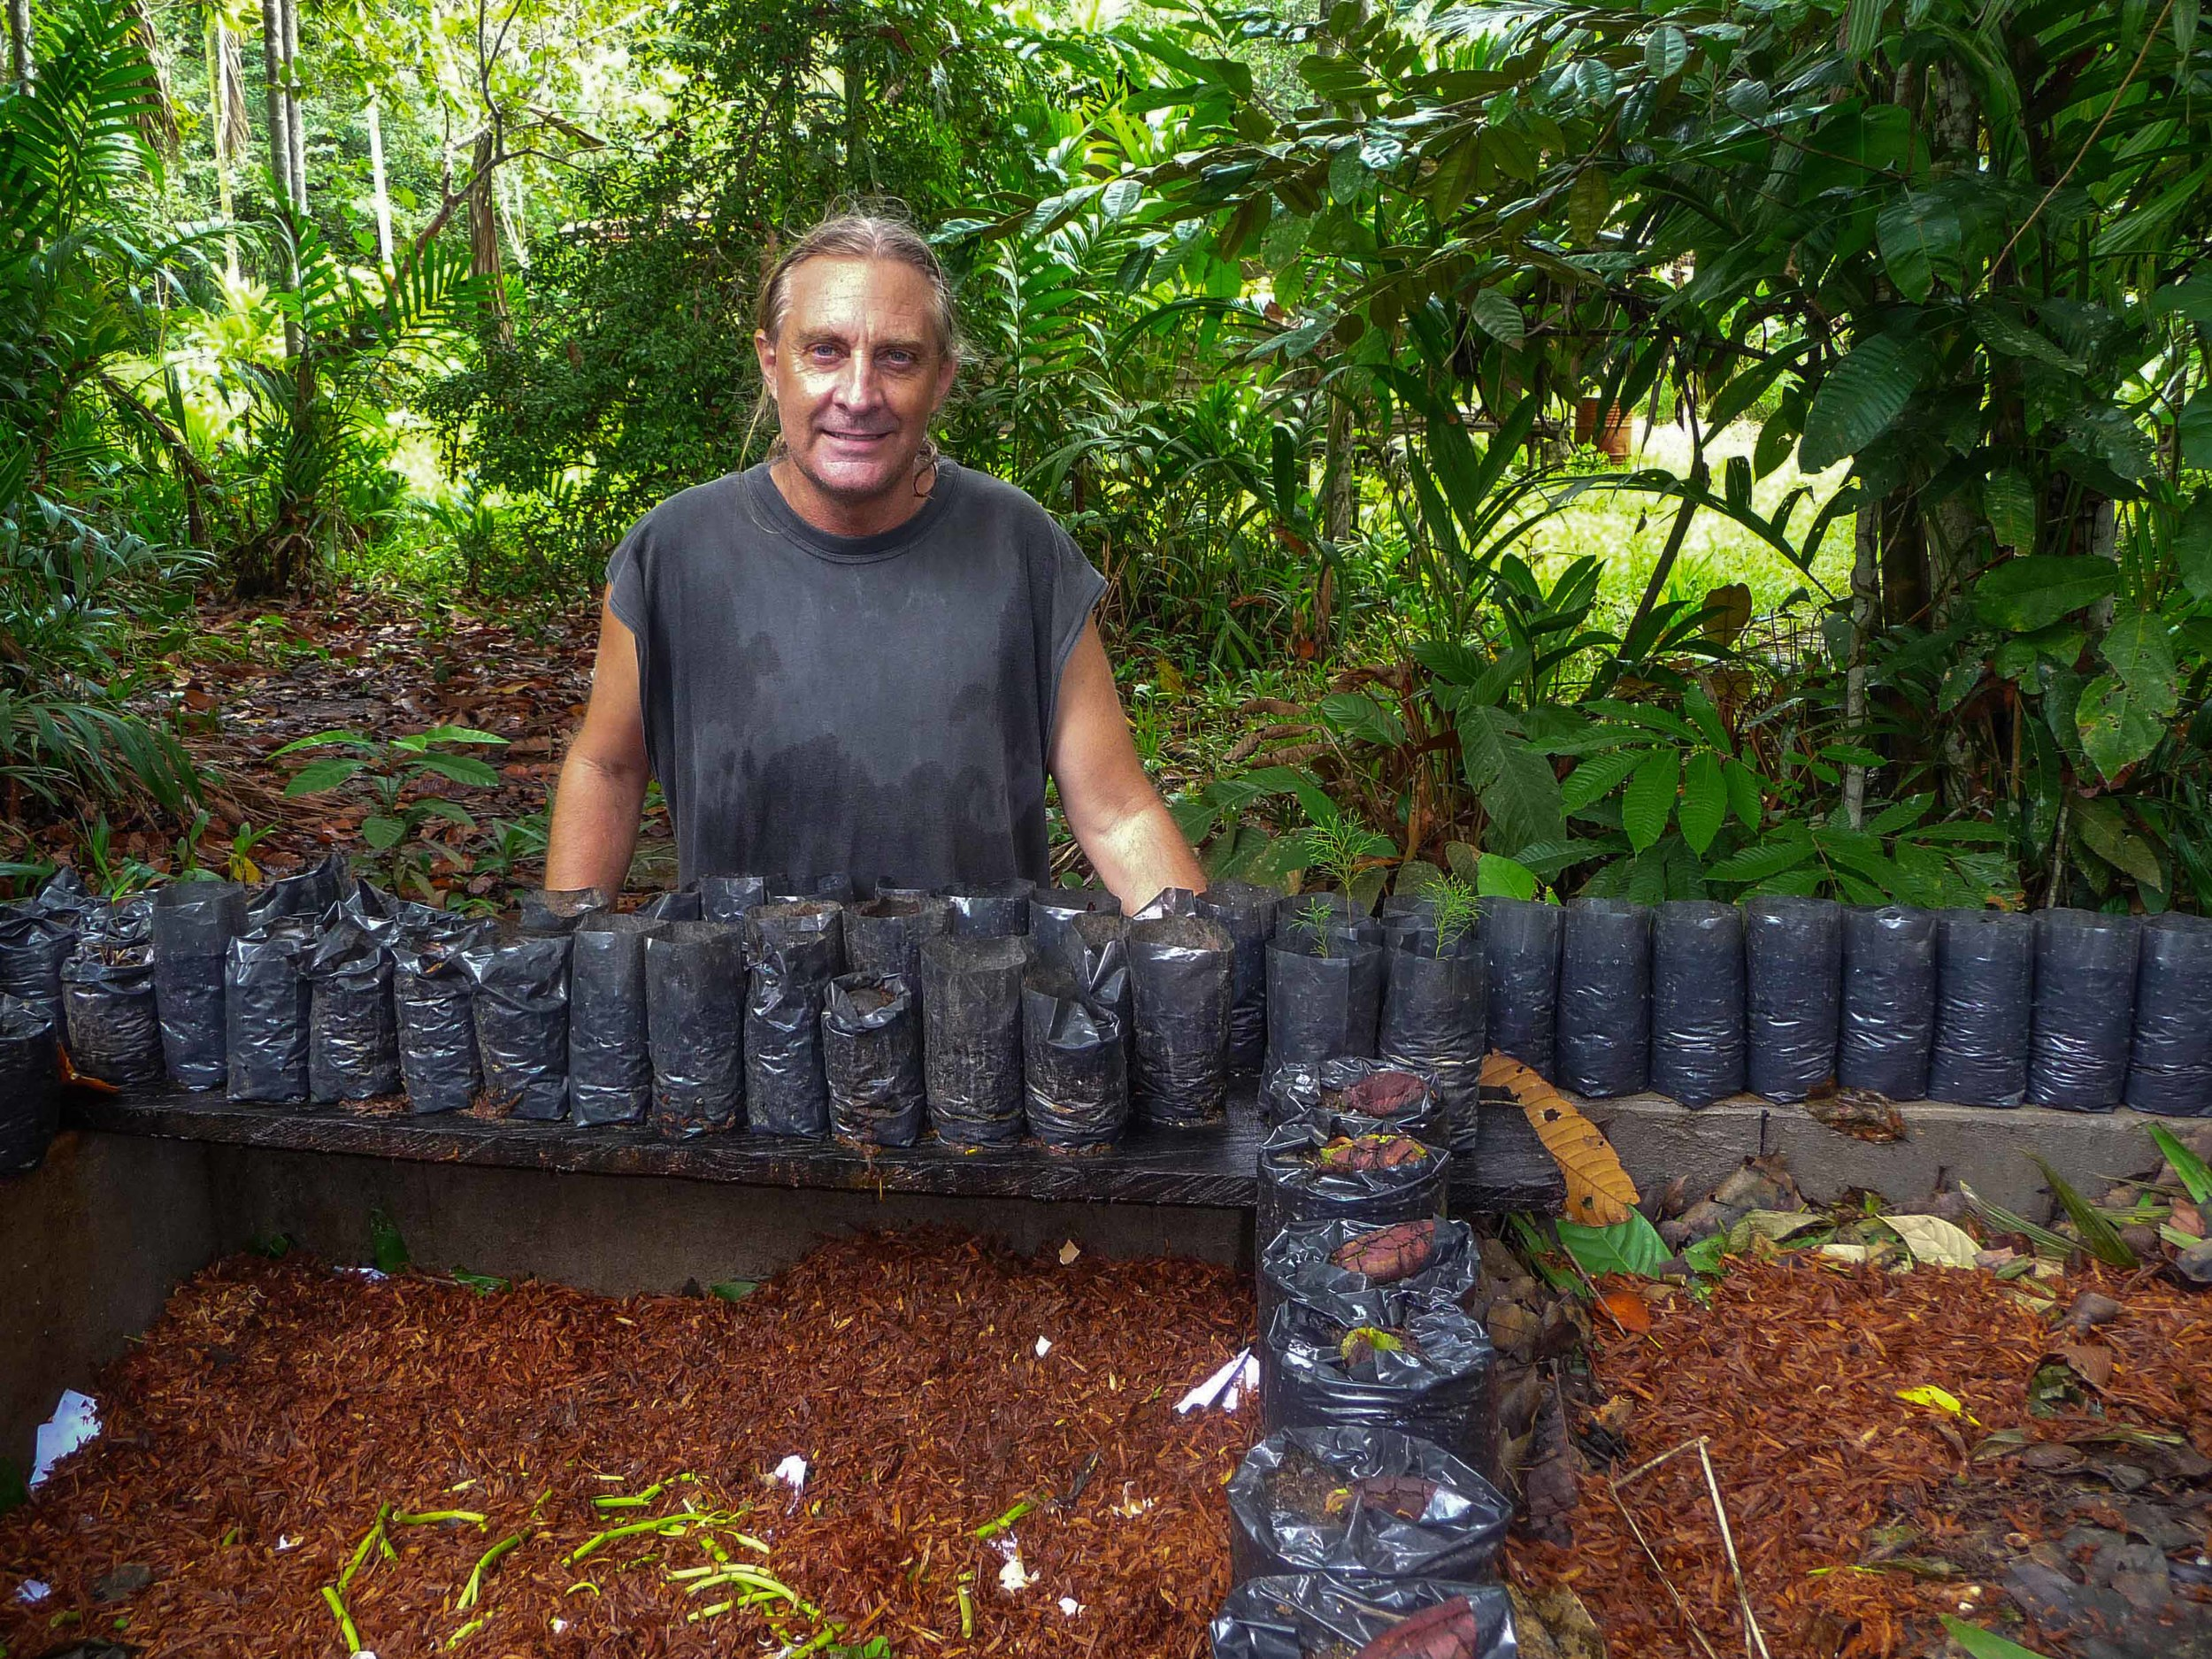 David with one of his native plant nurseries